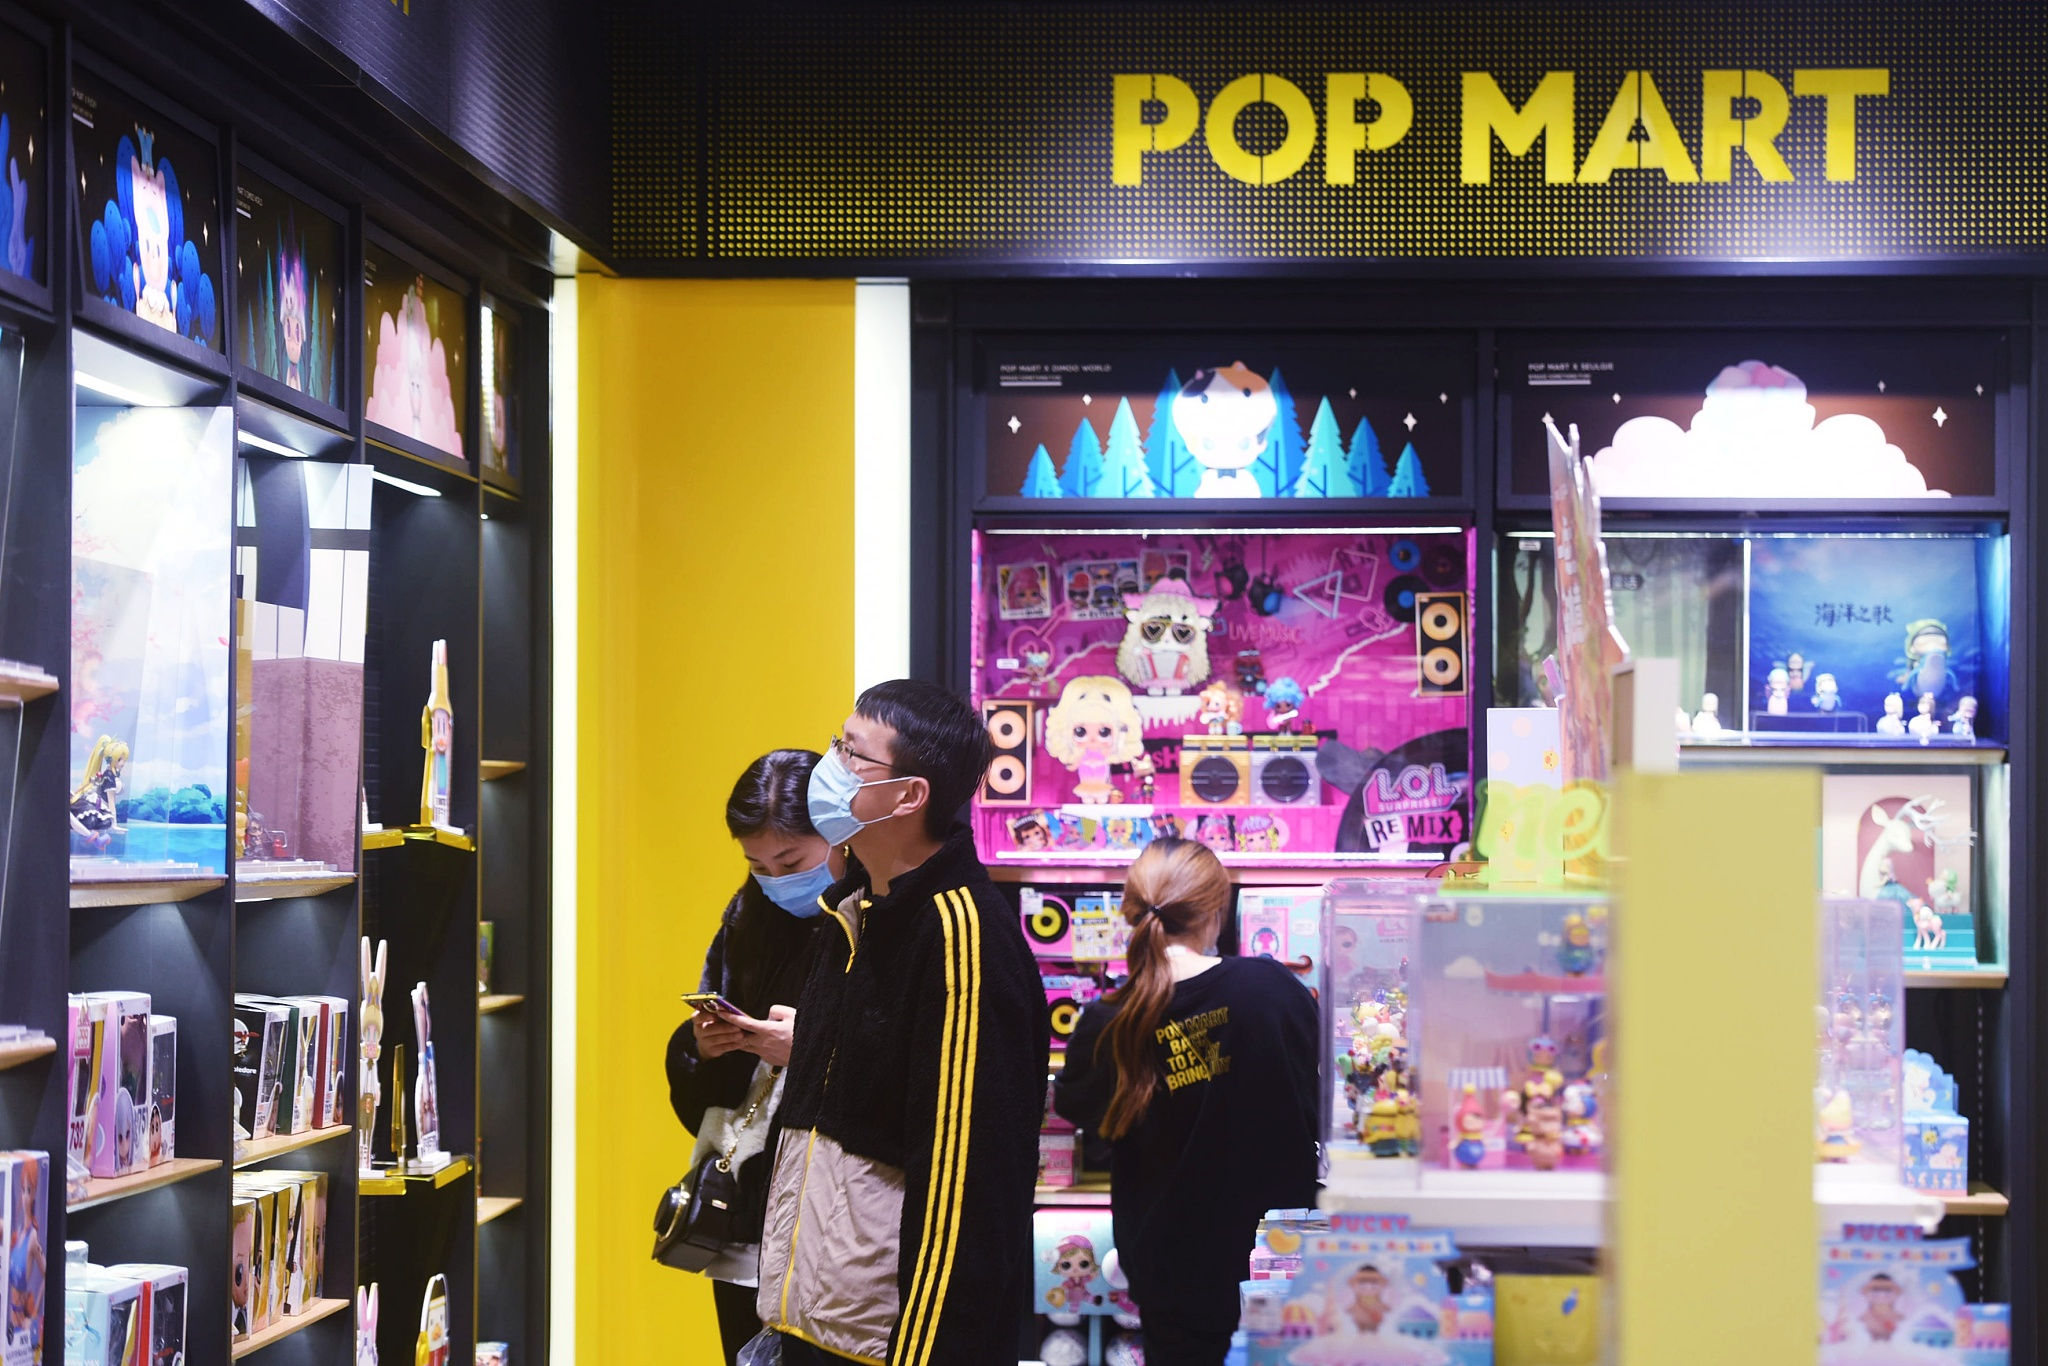 Pop Mart: Hot money or the future of the consumer market?